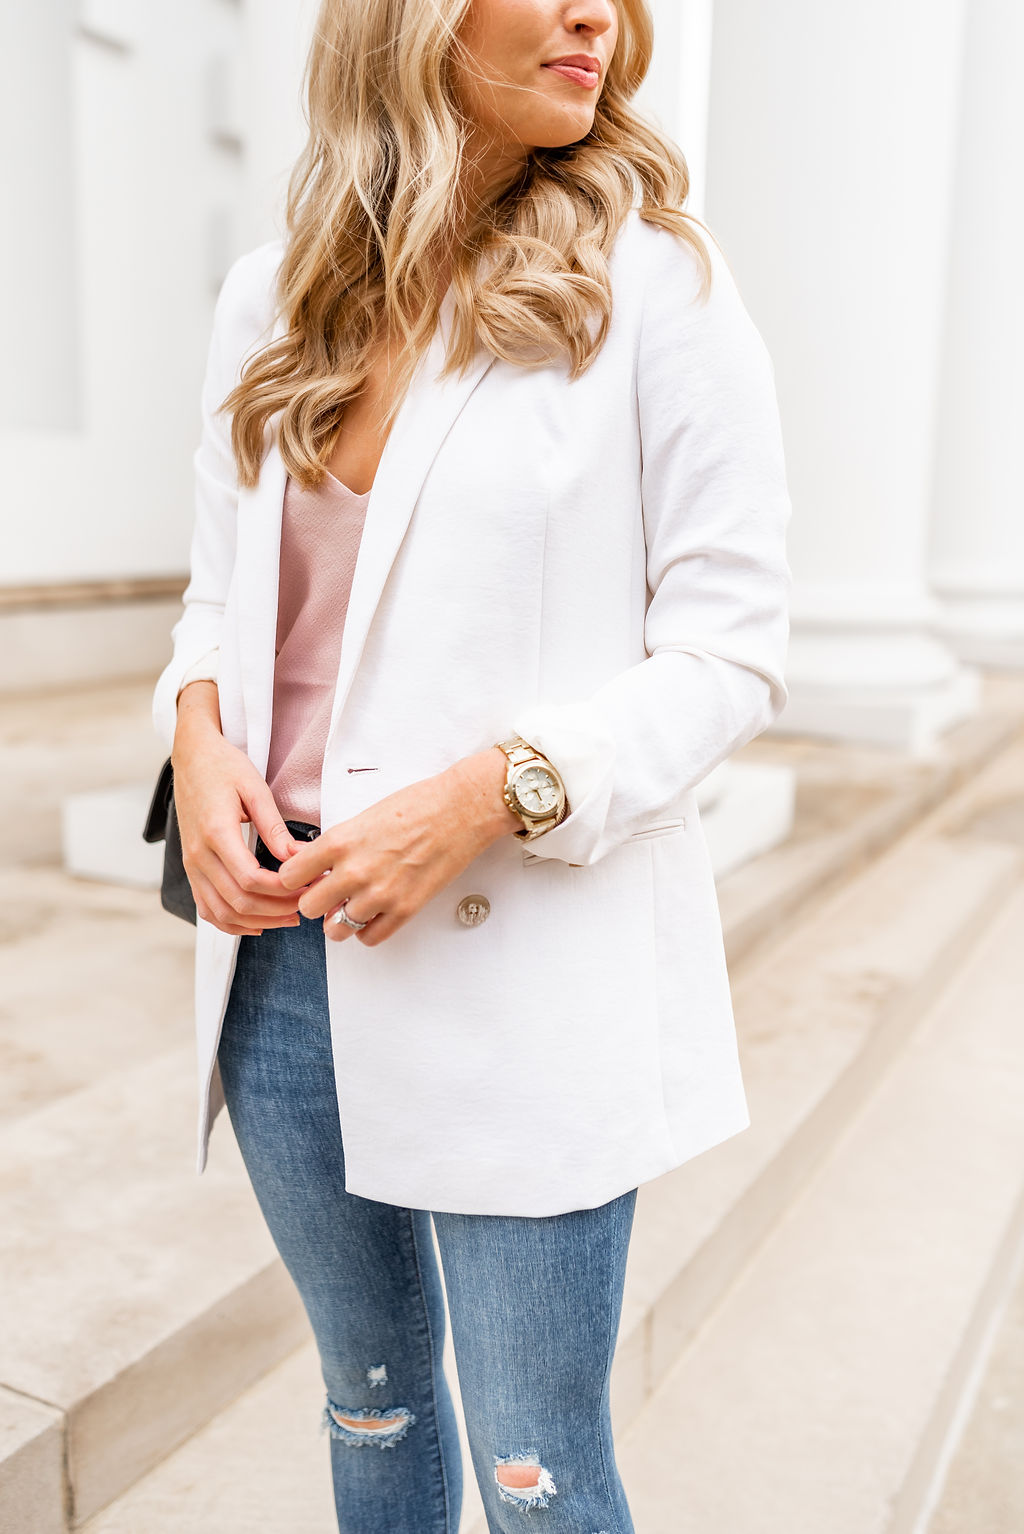 How to Style A White Blazer